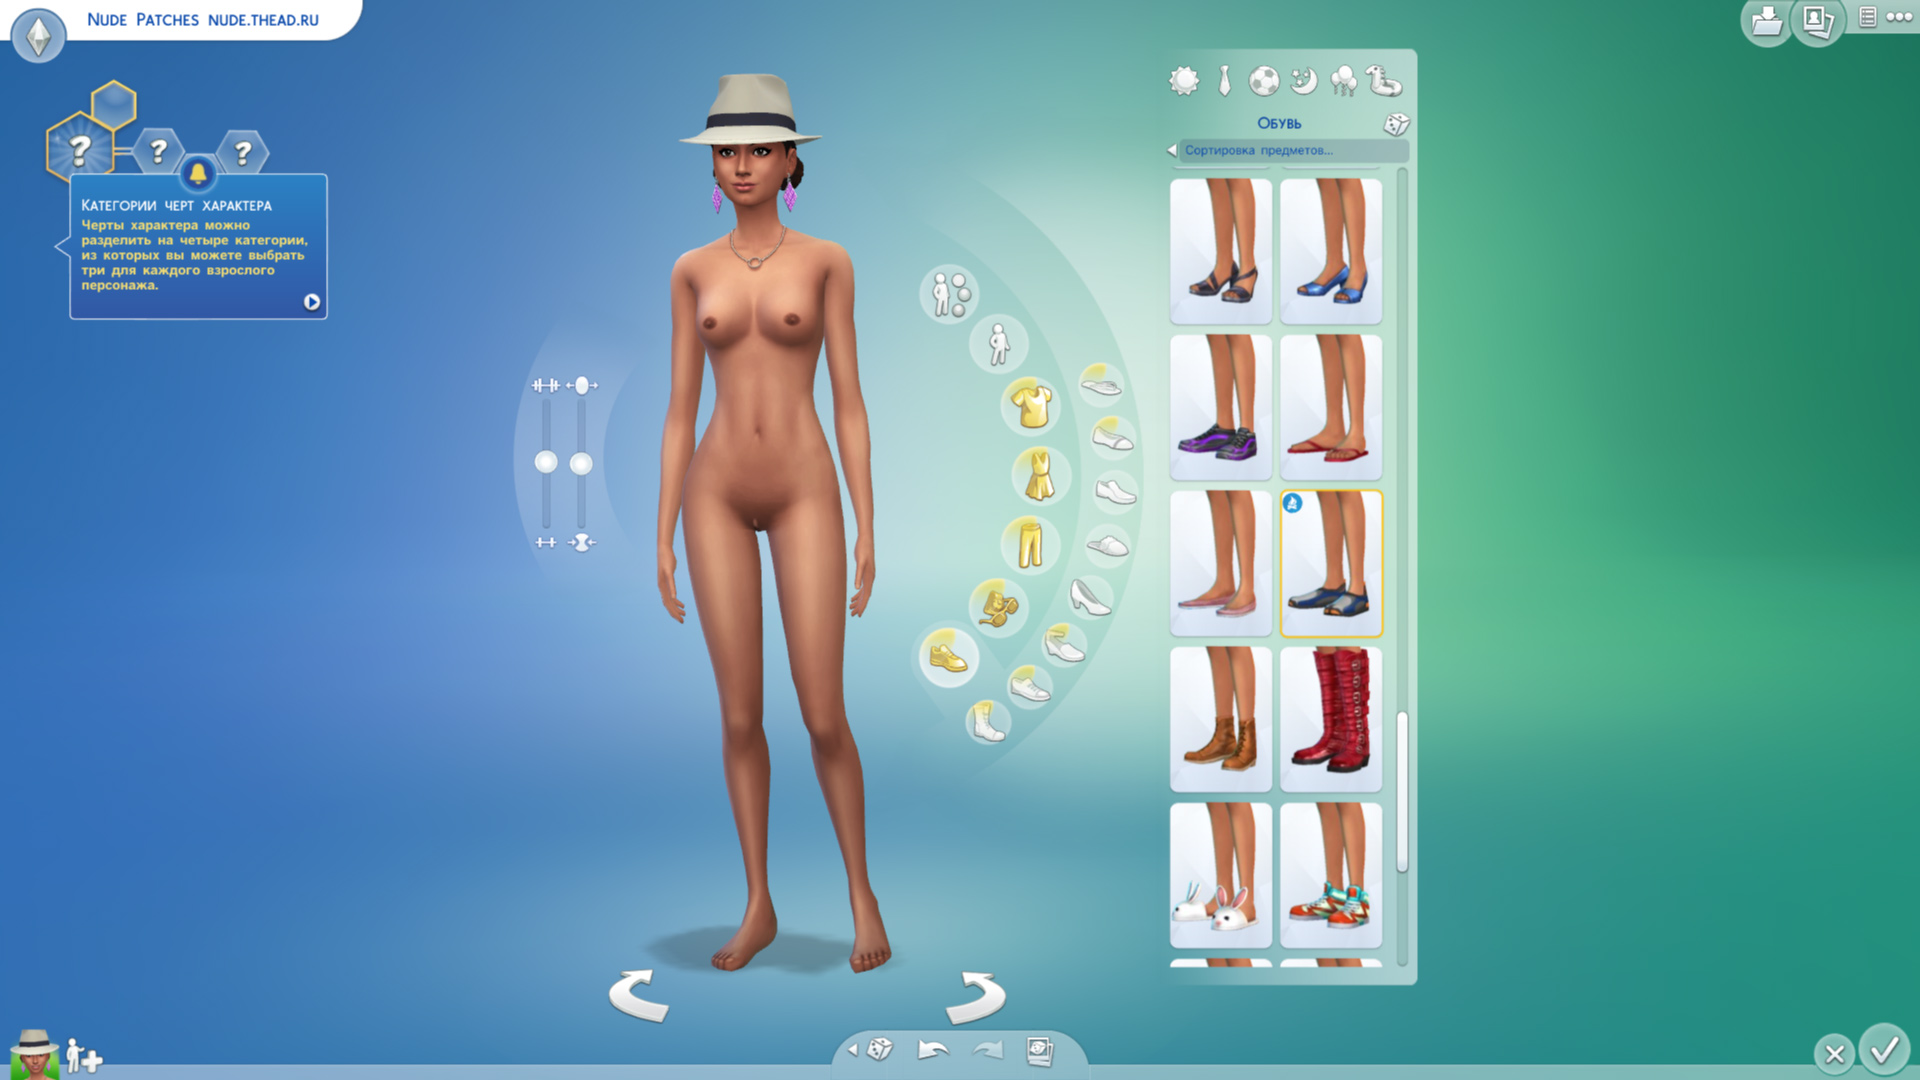 The sims nude patch download porn video